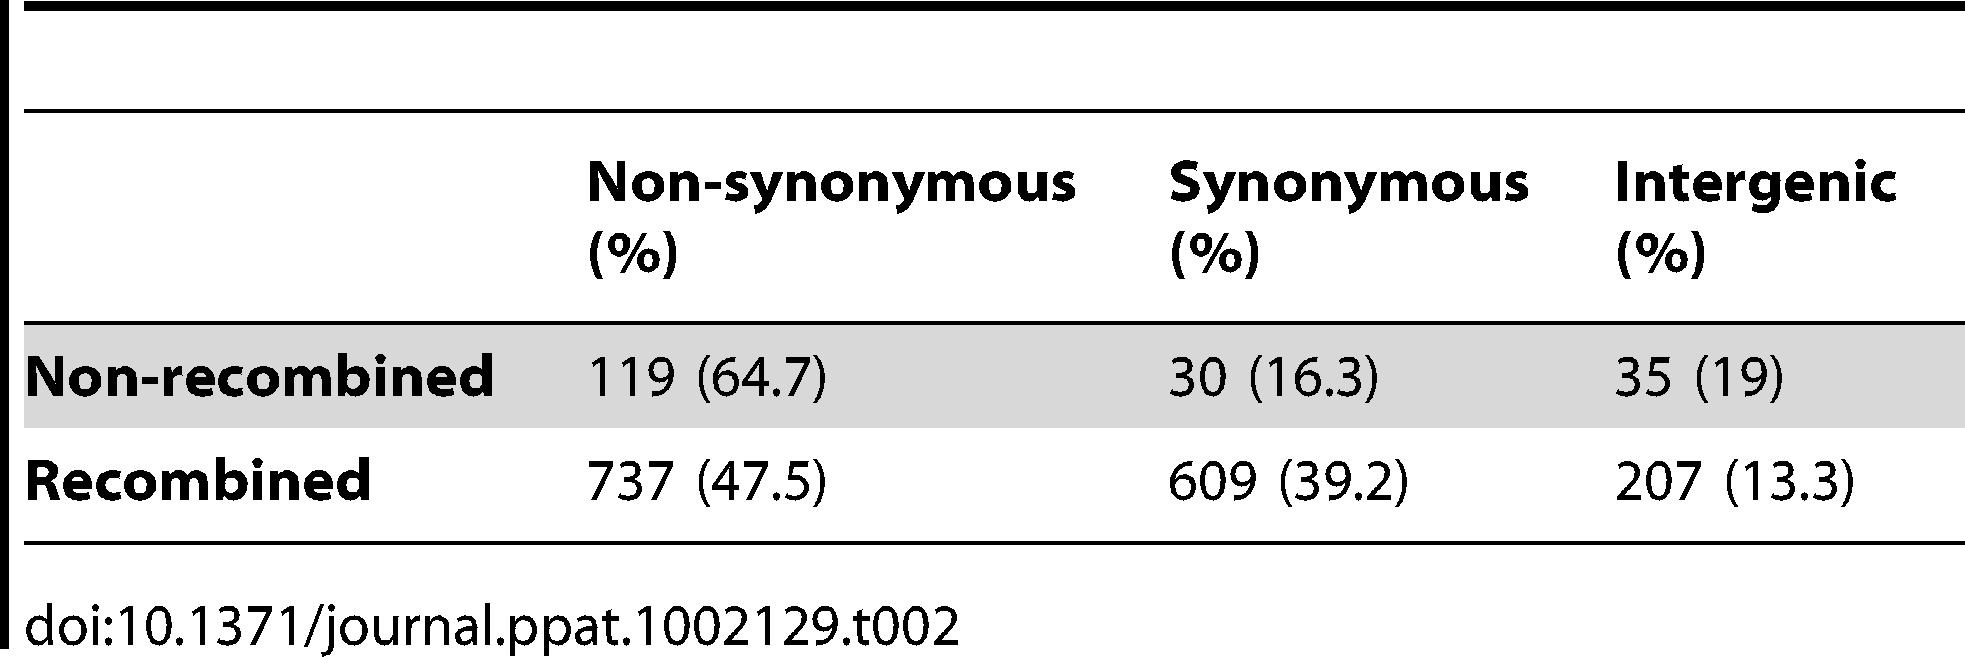 Number of non-synonymous, synonymous, and intergenic SNPs for recombined and non-recombined regions in a hypevirulent clone of <i>C. difficile</i>.